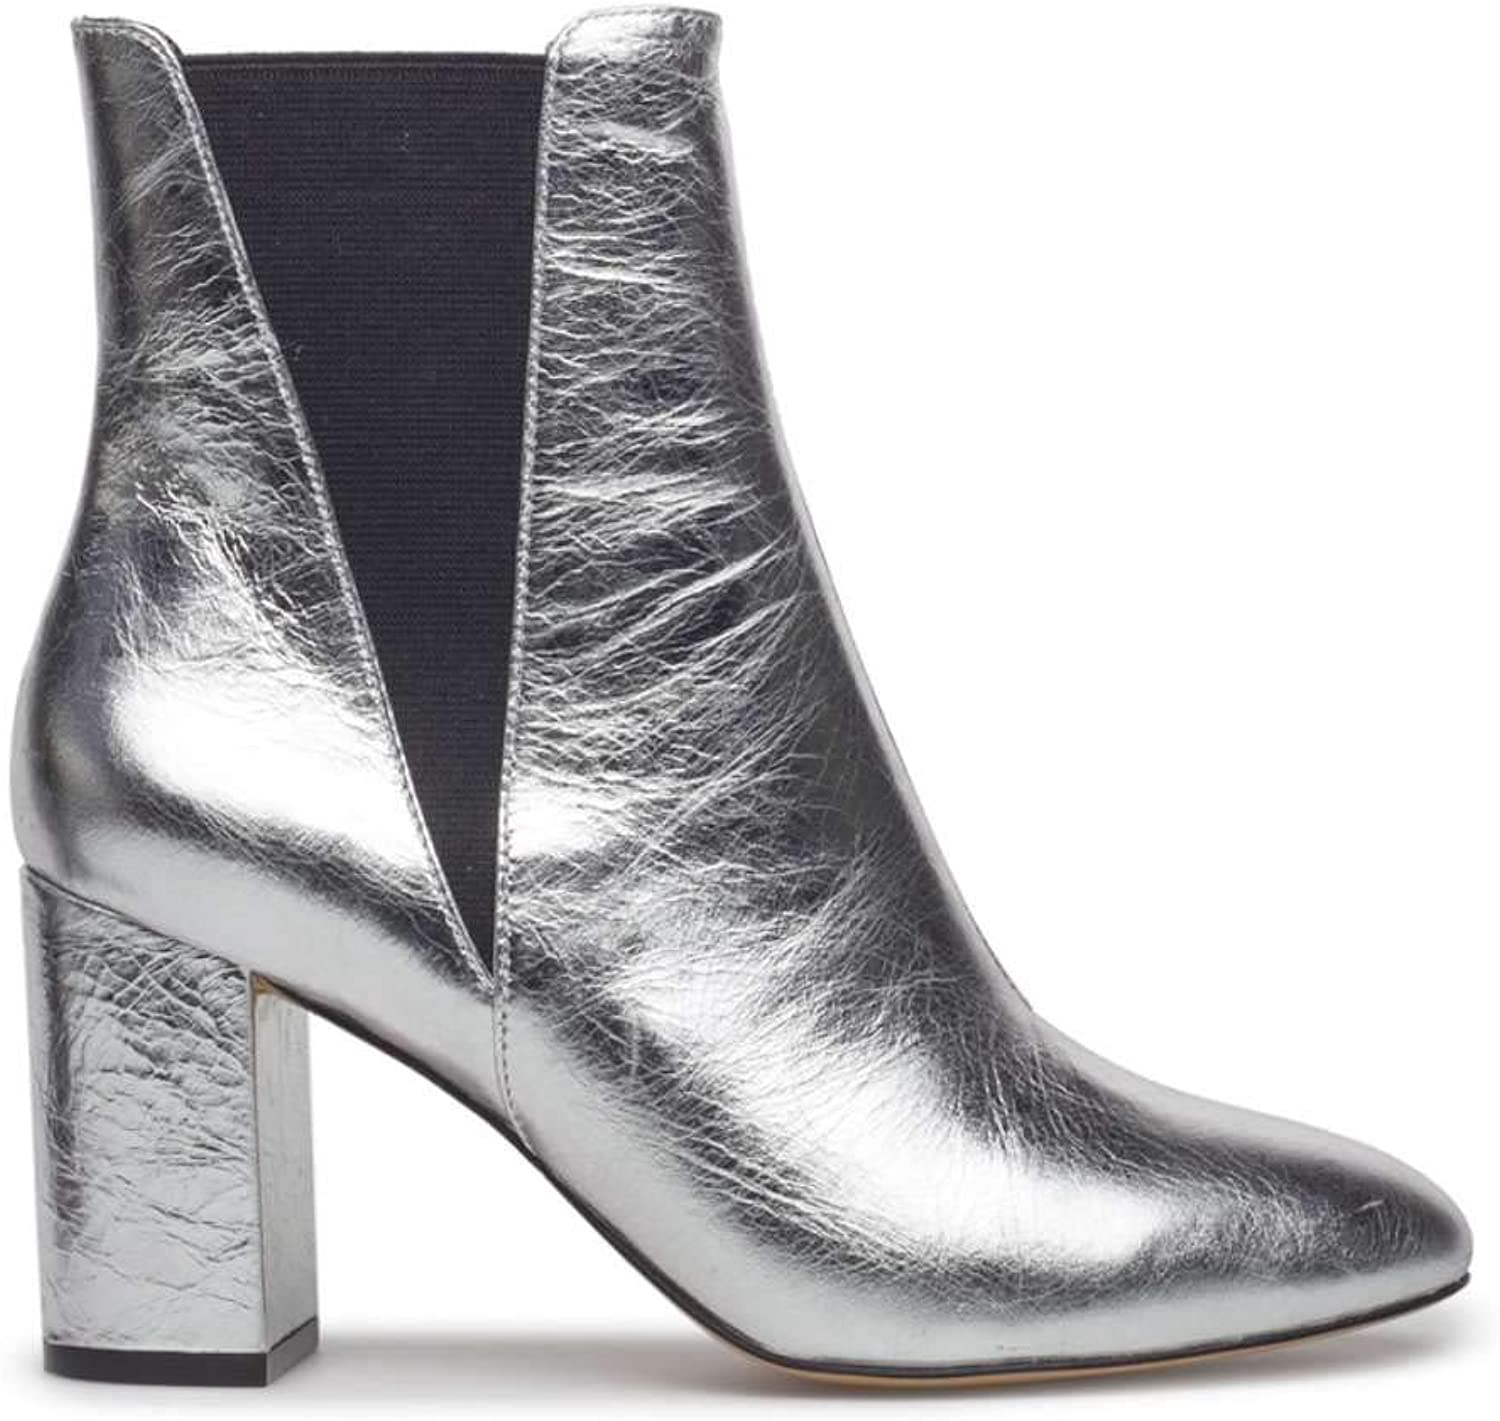 Rebecca Minkoff Womens Serena Leather Ankle Booties